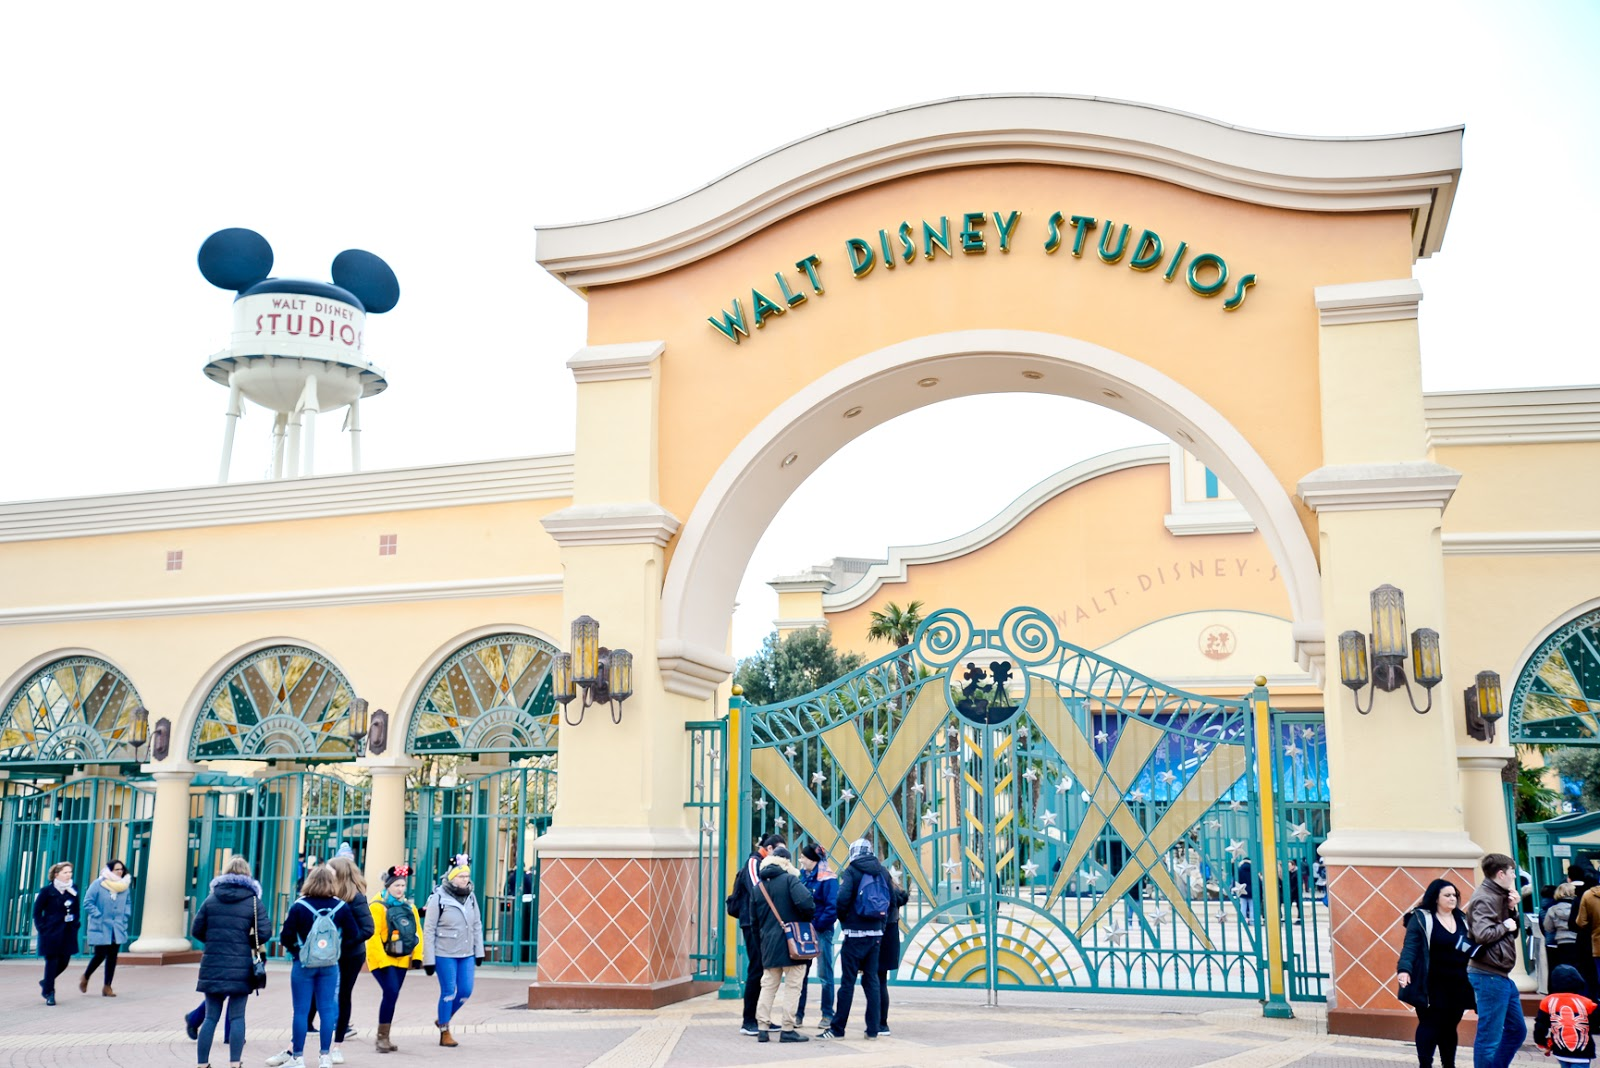 walt disney studios, first time at disneyland paris, disneyland paris travel blog, disneyland, disneyland paris highlights, disneyland paris must do, vegetarians at disneyland paris,